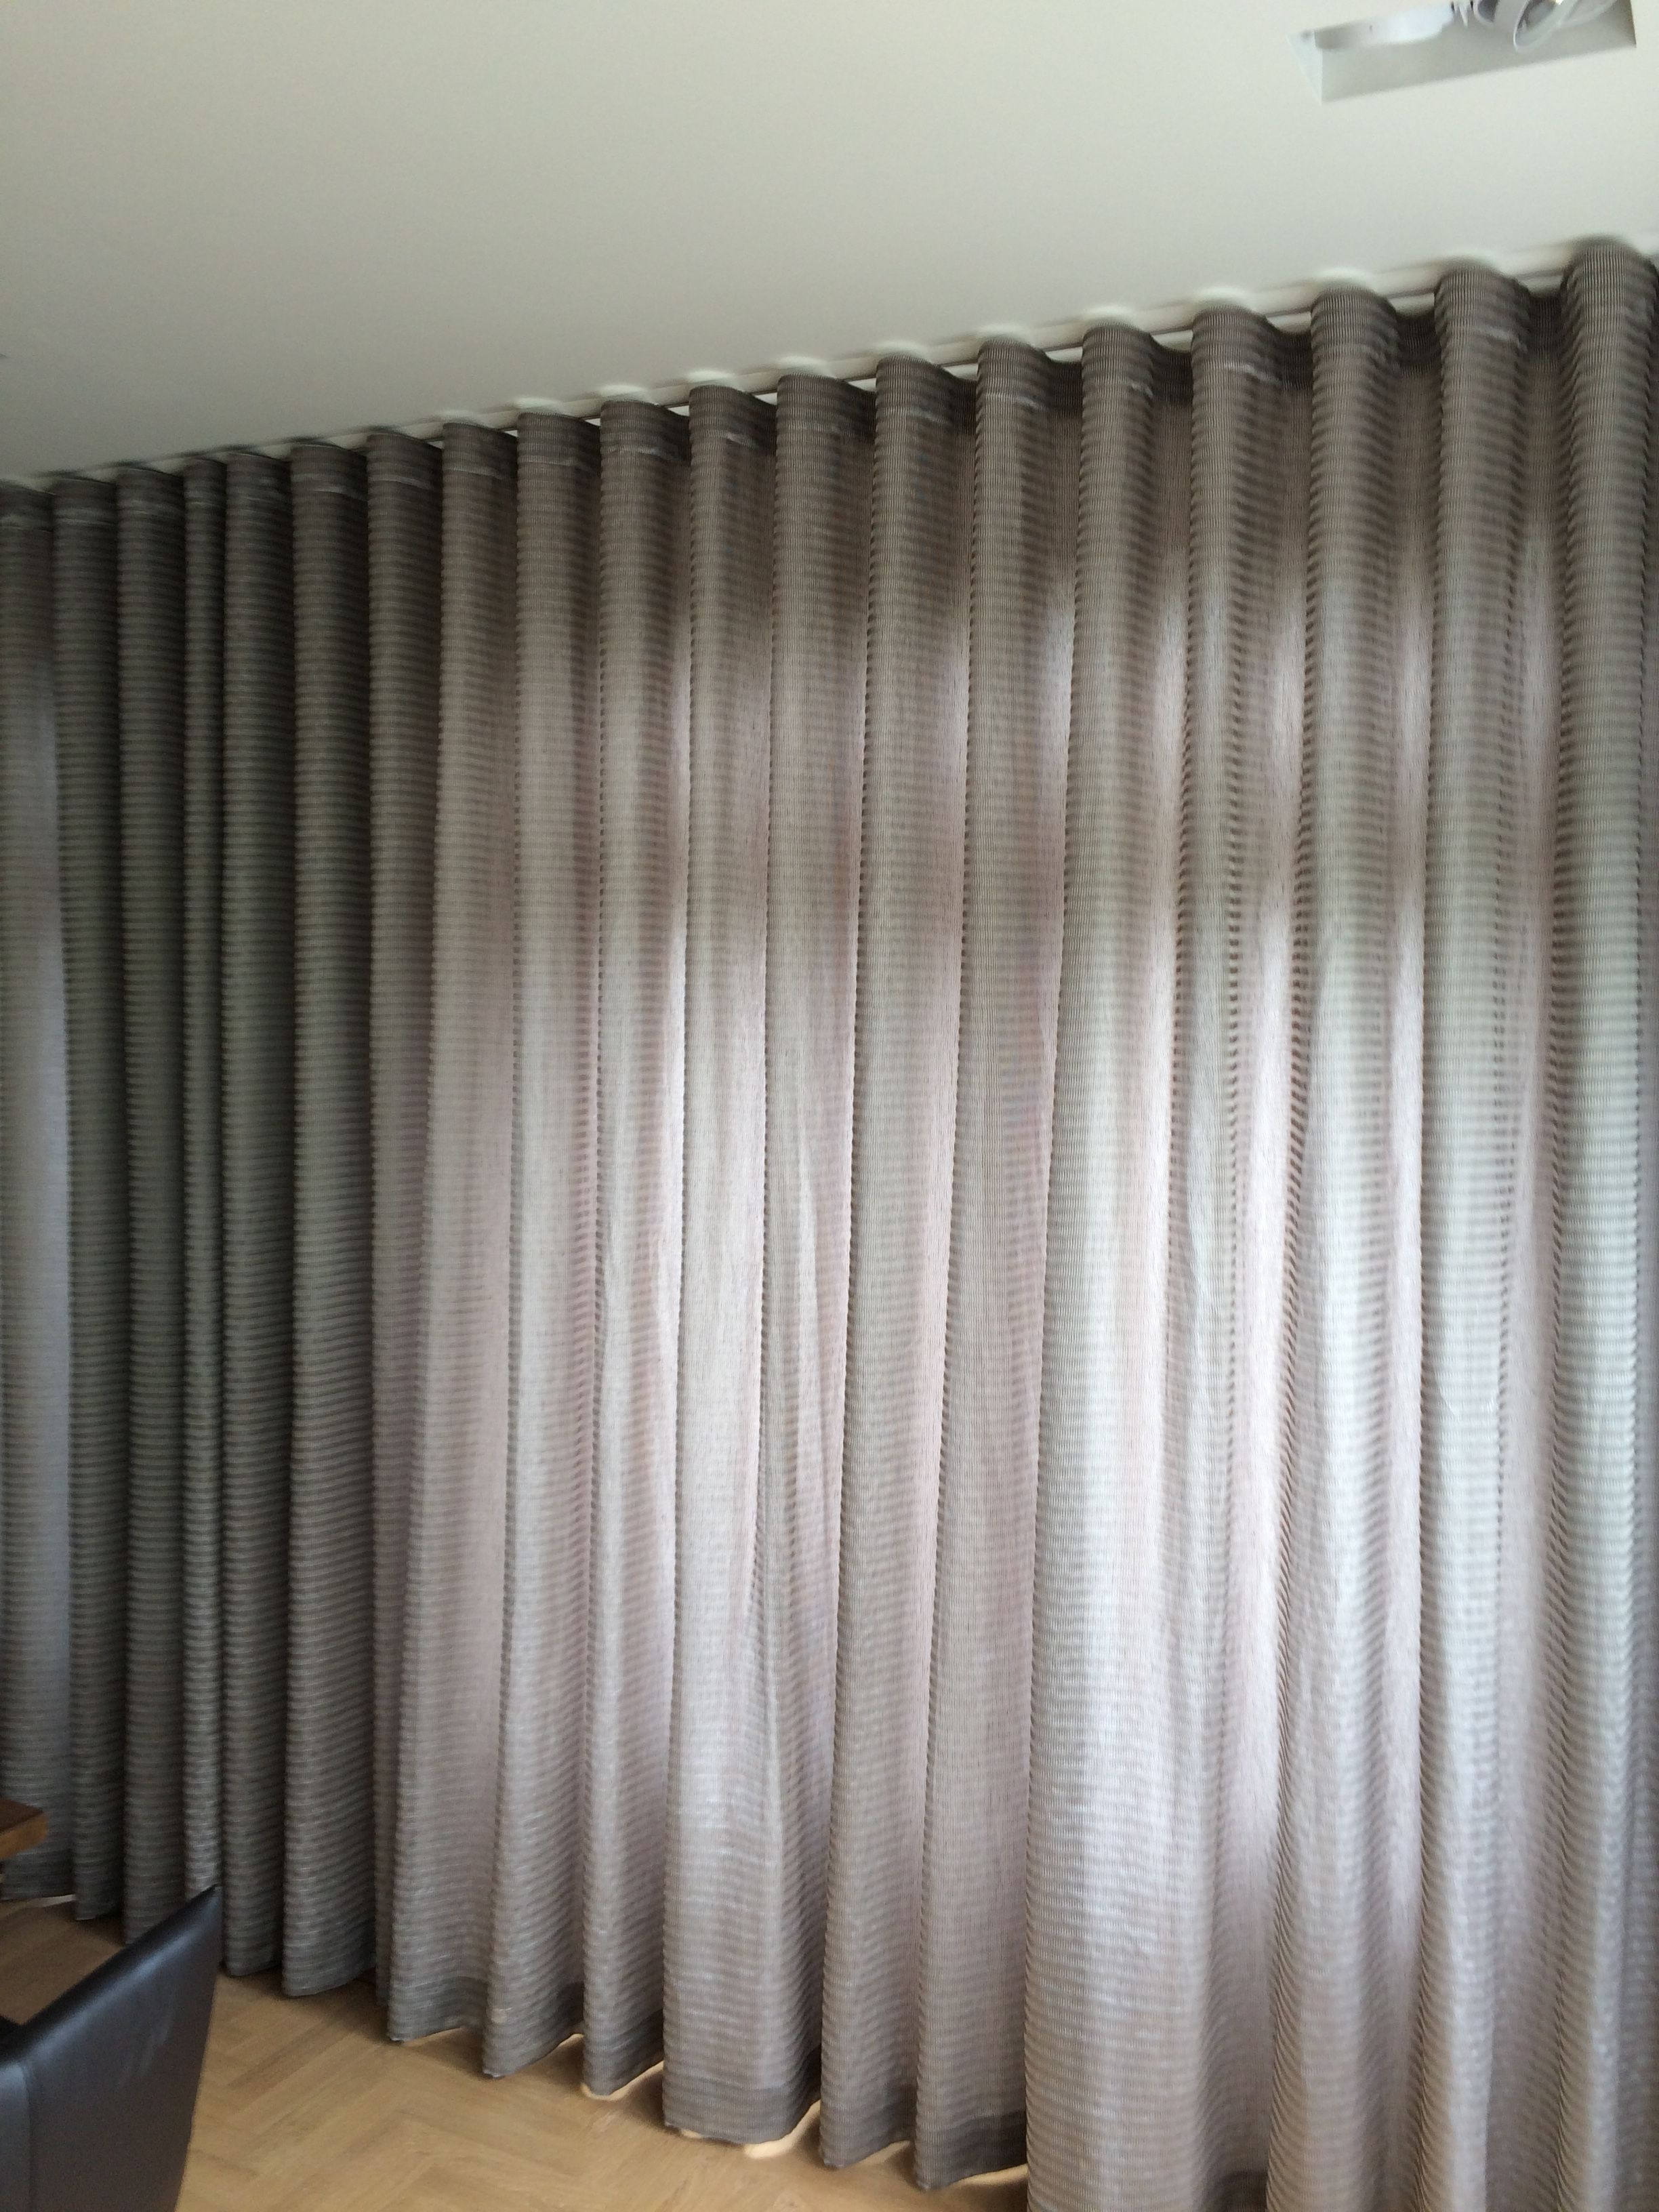 denim blackout mini g drapes panel curtains window current eclipse blinds inch